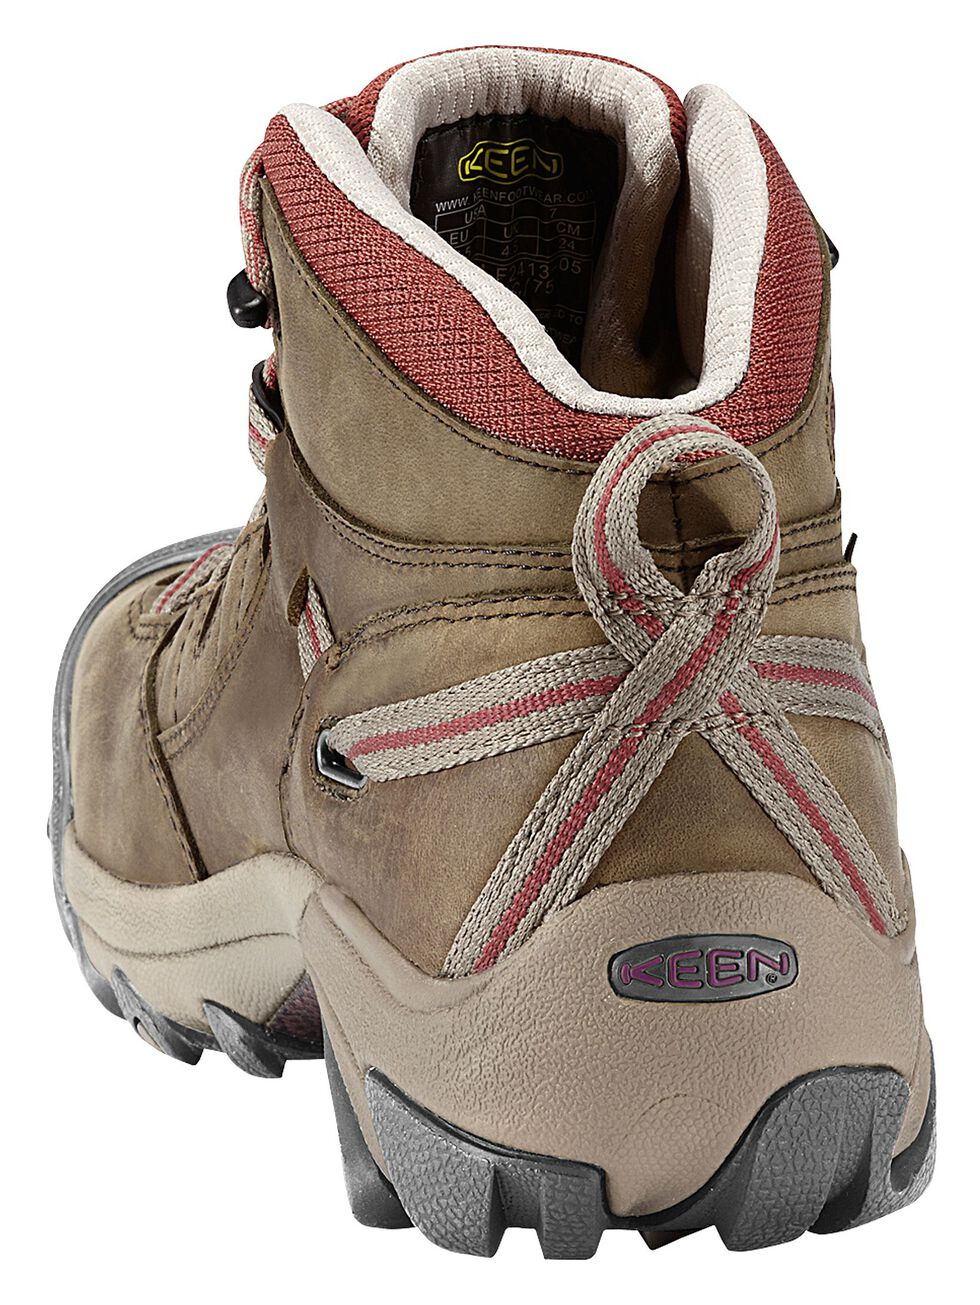 Keen Women's Detroit Mid Waterproof Boots - Steel Toe, Olive, hi-res